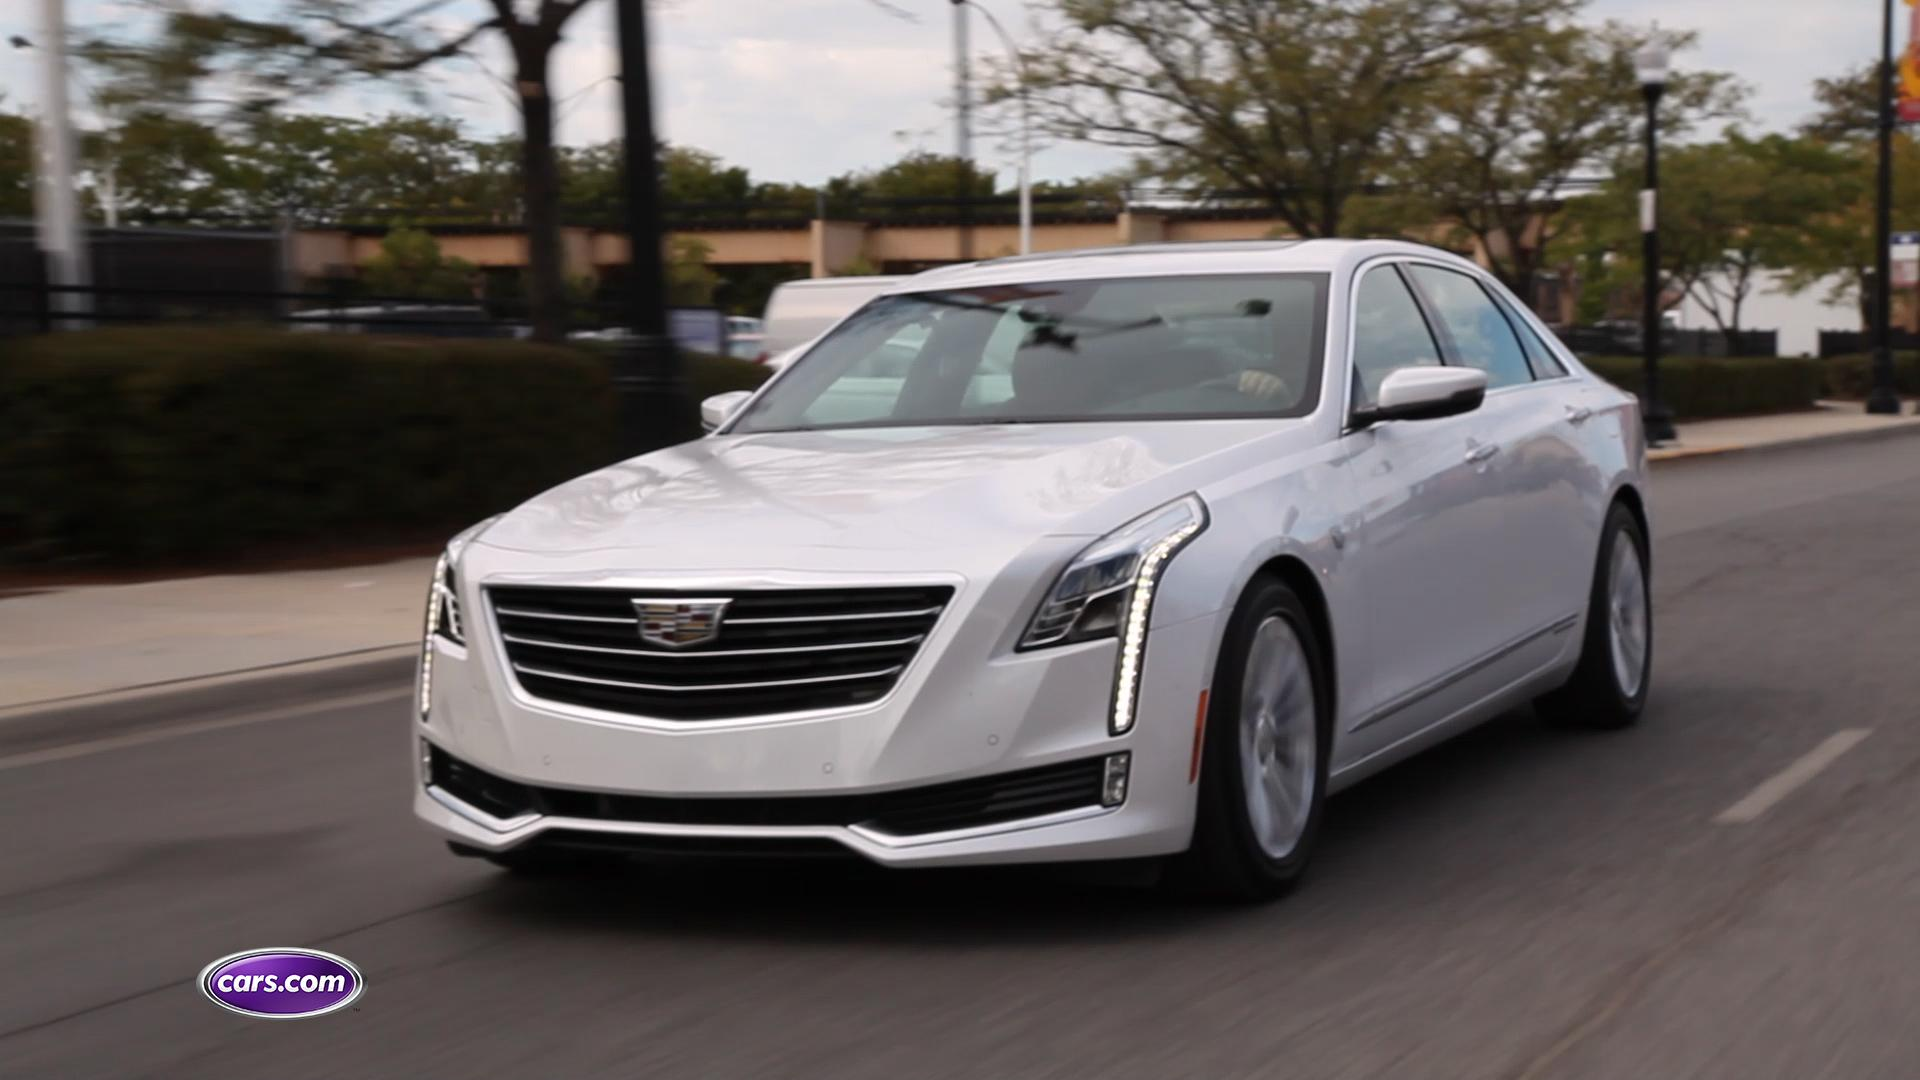 2017 Cadillac CT6 Plug-In Hybrid Video Review